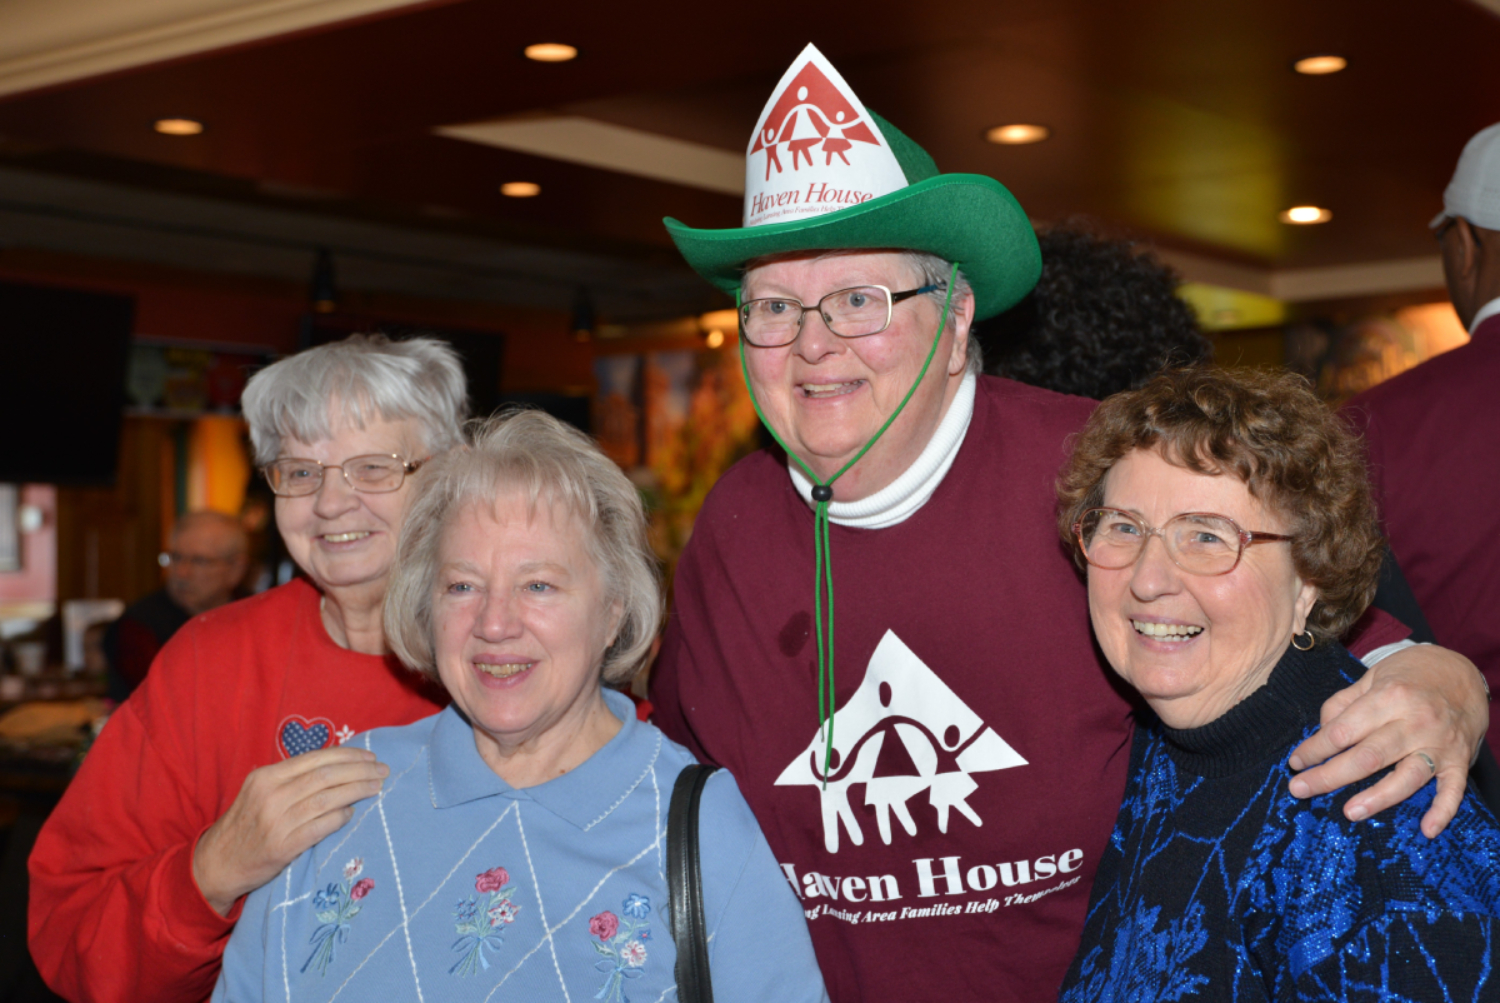 Sr Pat Newhouse at a fundraiser for a homeless shelter for families